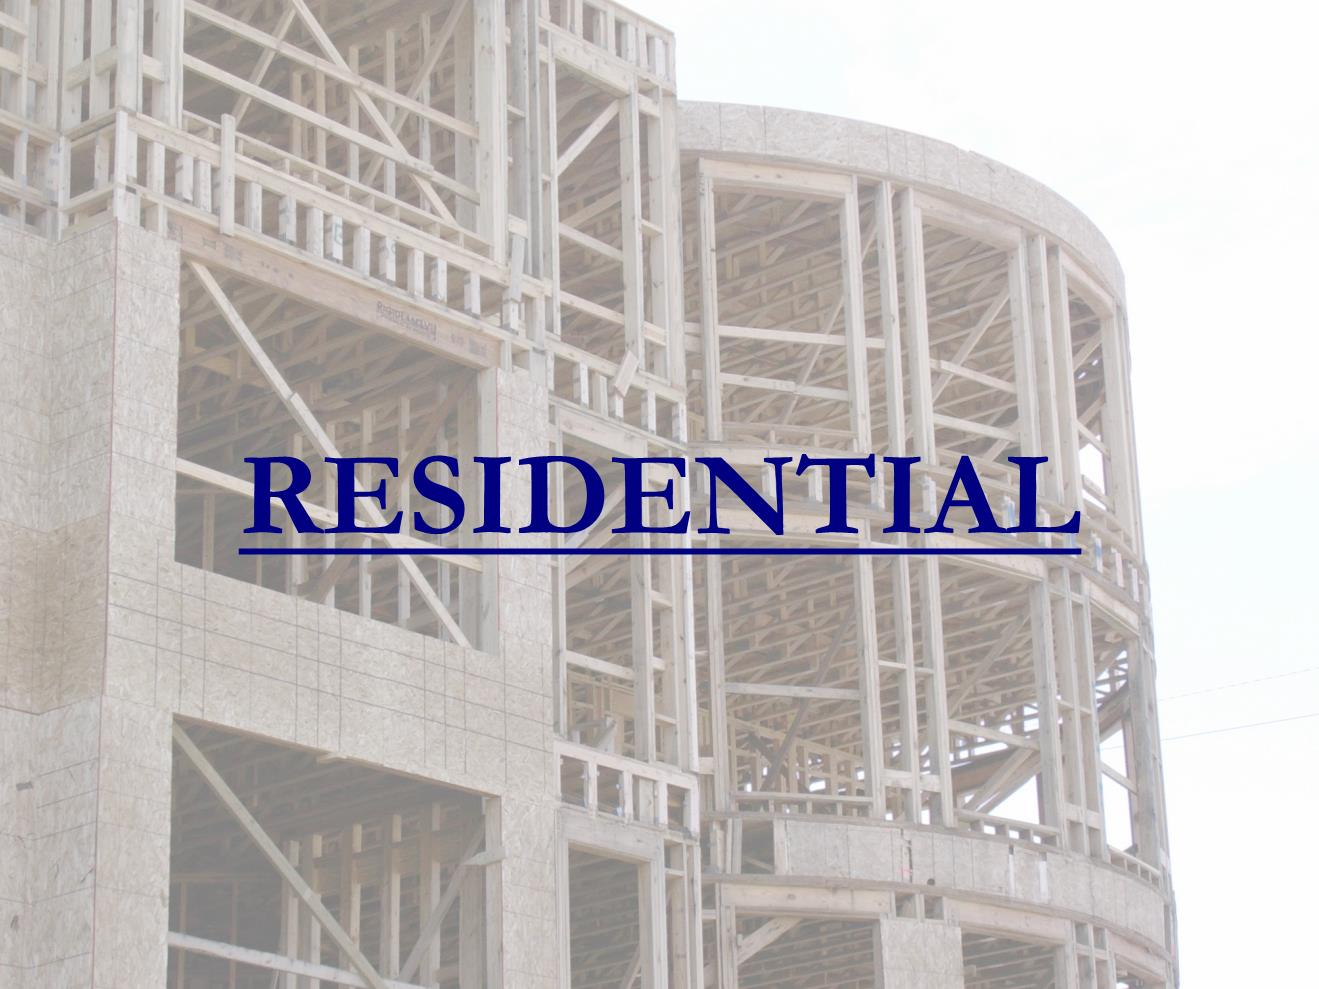 Residential - typical services - text.jpg